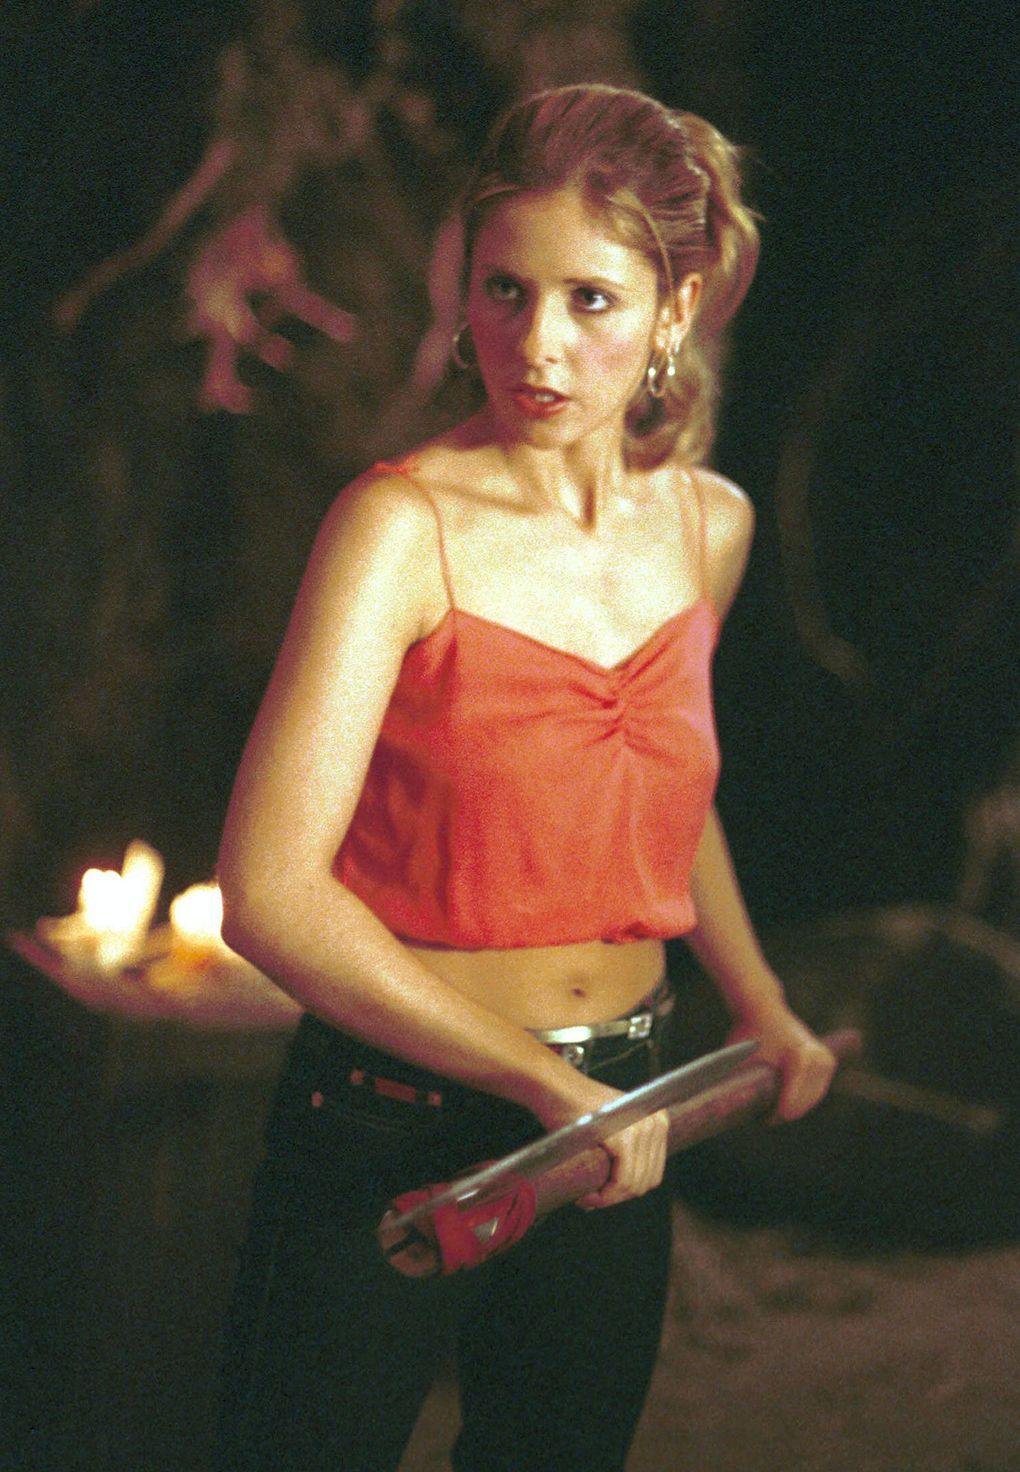 """Sarah Michelle Gellar (Buffy) and Michelle Trachtenberg (Dawn) shared a sibling rivalry on """"Buffy the Vampire Slayer,"""" the iconic '90s TV shows that spawned several actors careers and as many spinoffs. (Richard Cartwright / The WB)"""